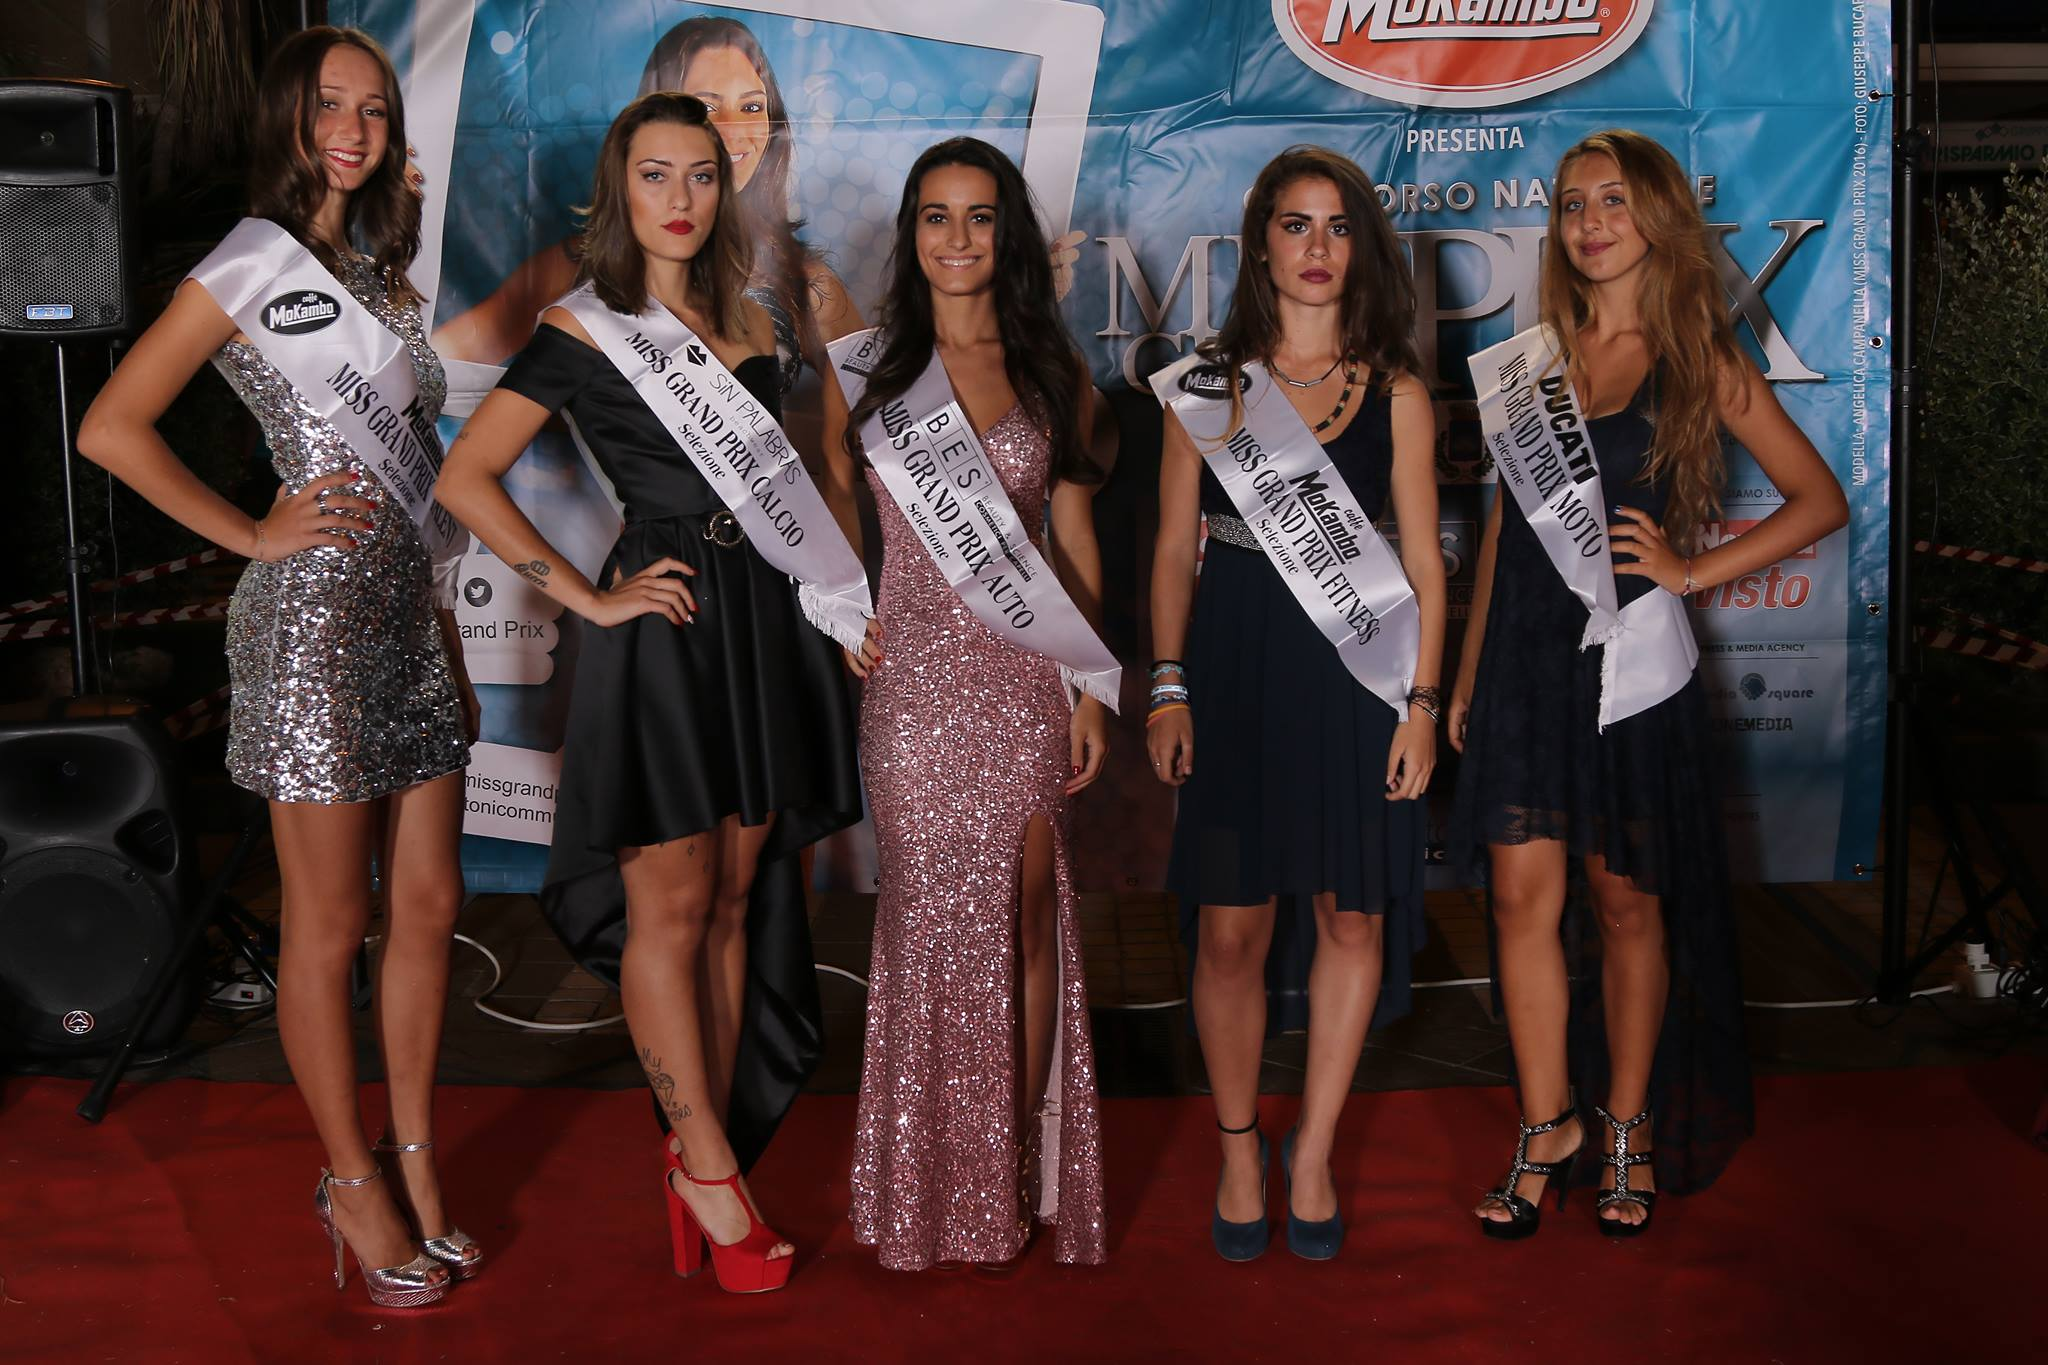 Finale ligure di Miss Grand Prix 2017